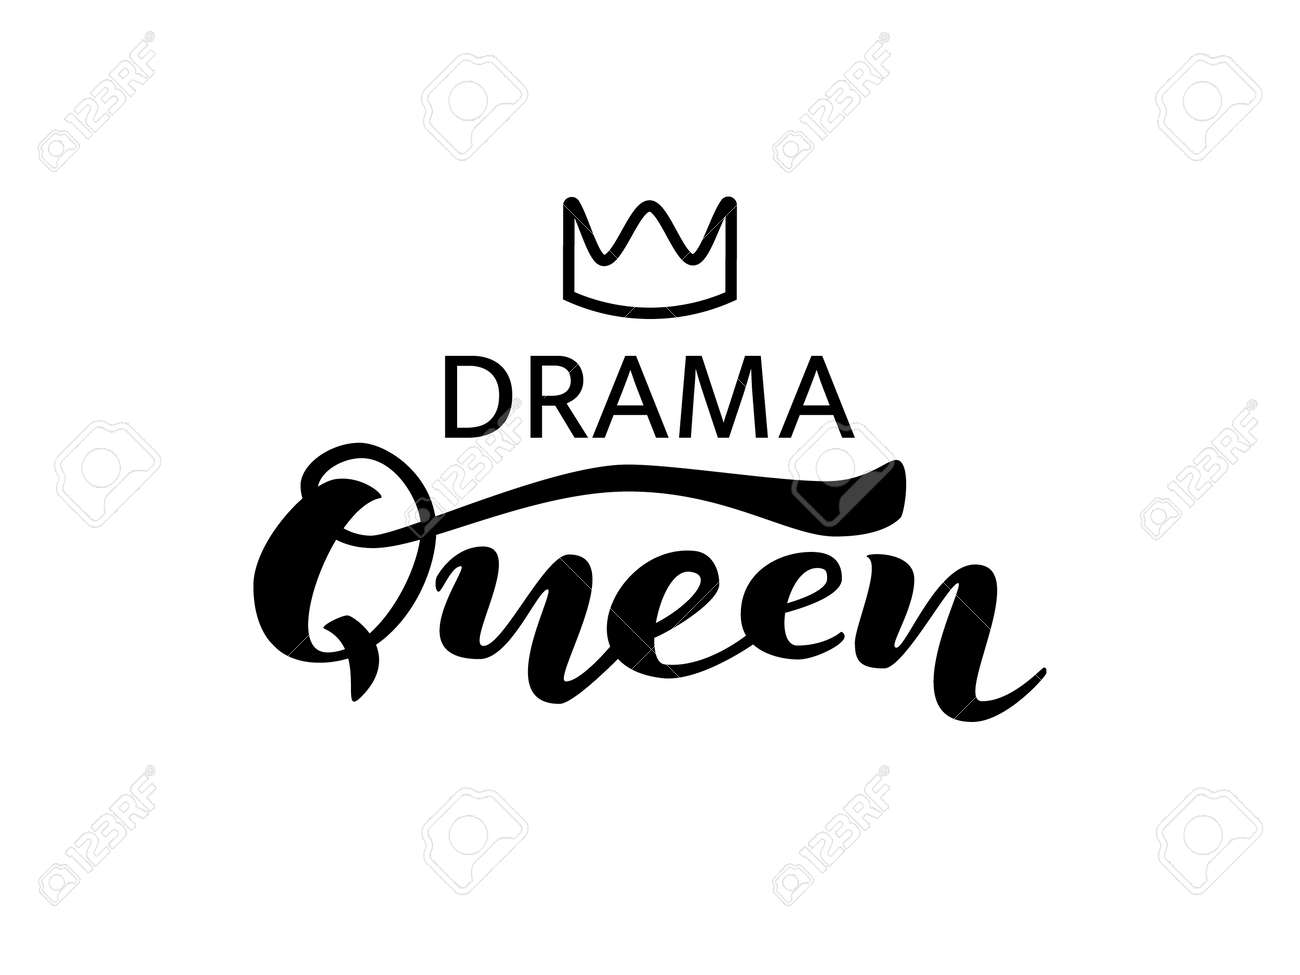 Drama queen lettering with crown  Vector illustration